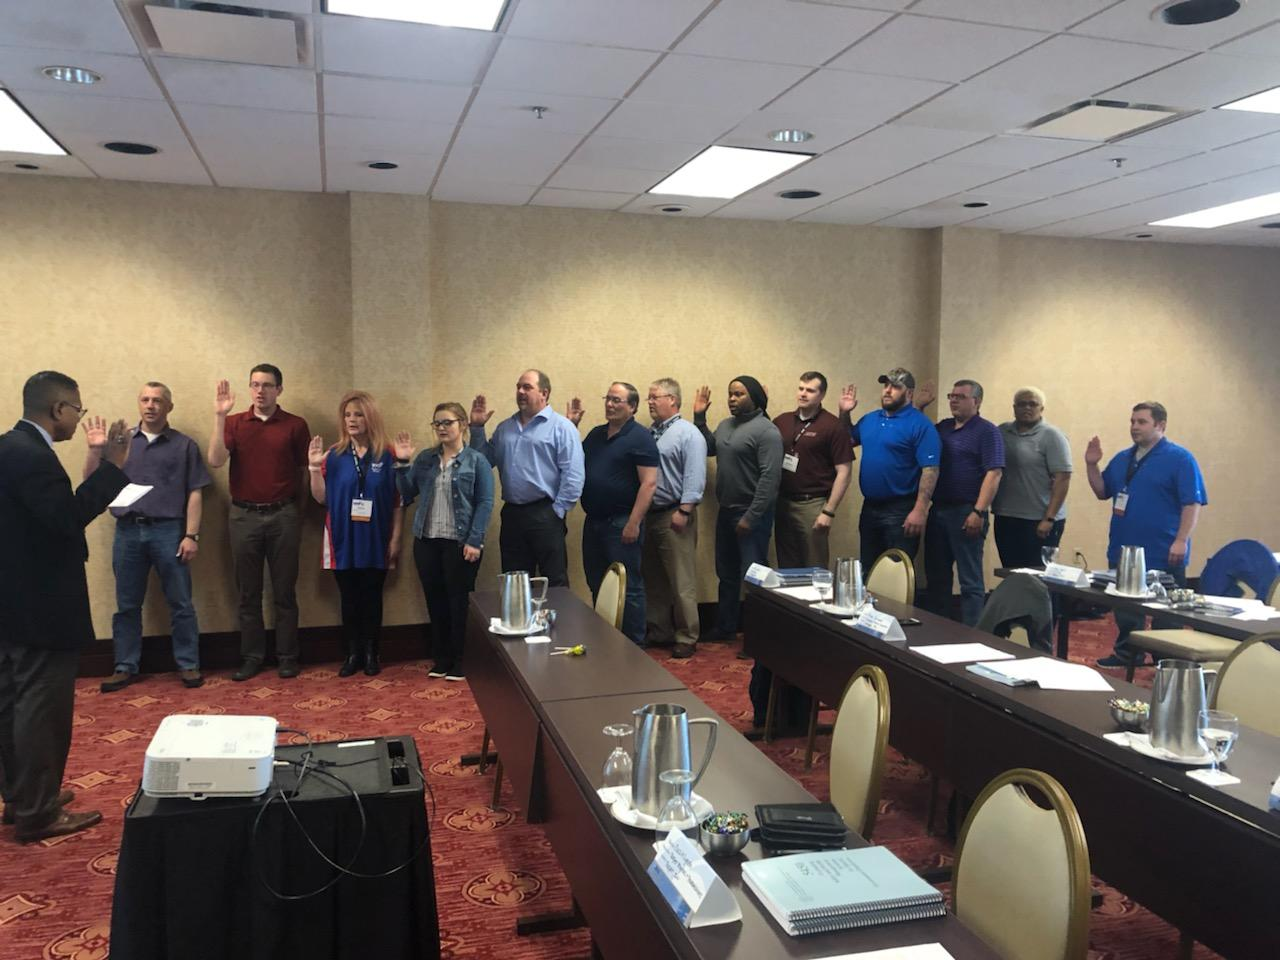 SGE training course conducted May, 2019 hosted by Region V VPPPA, in Grand Rapids, Michigan.